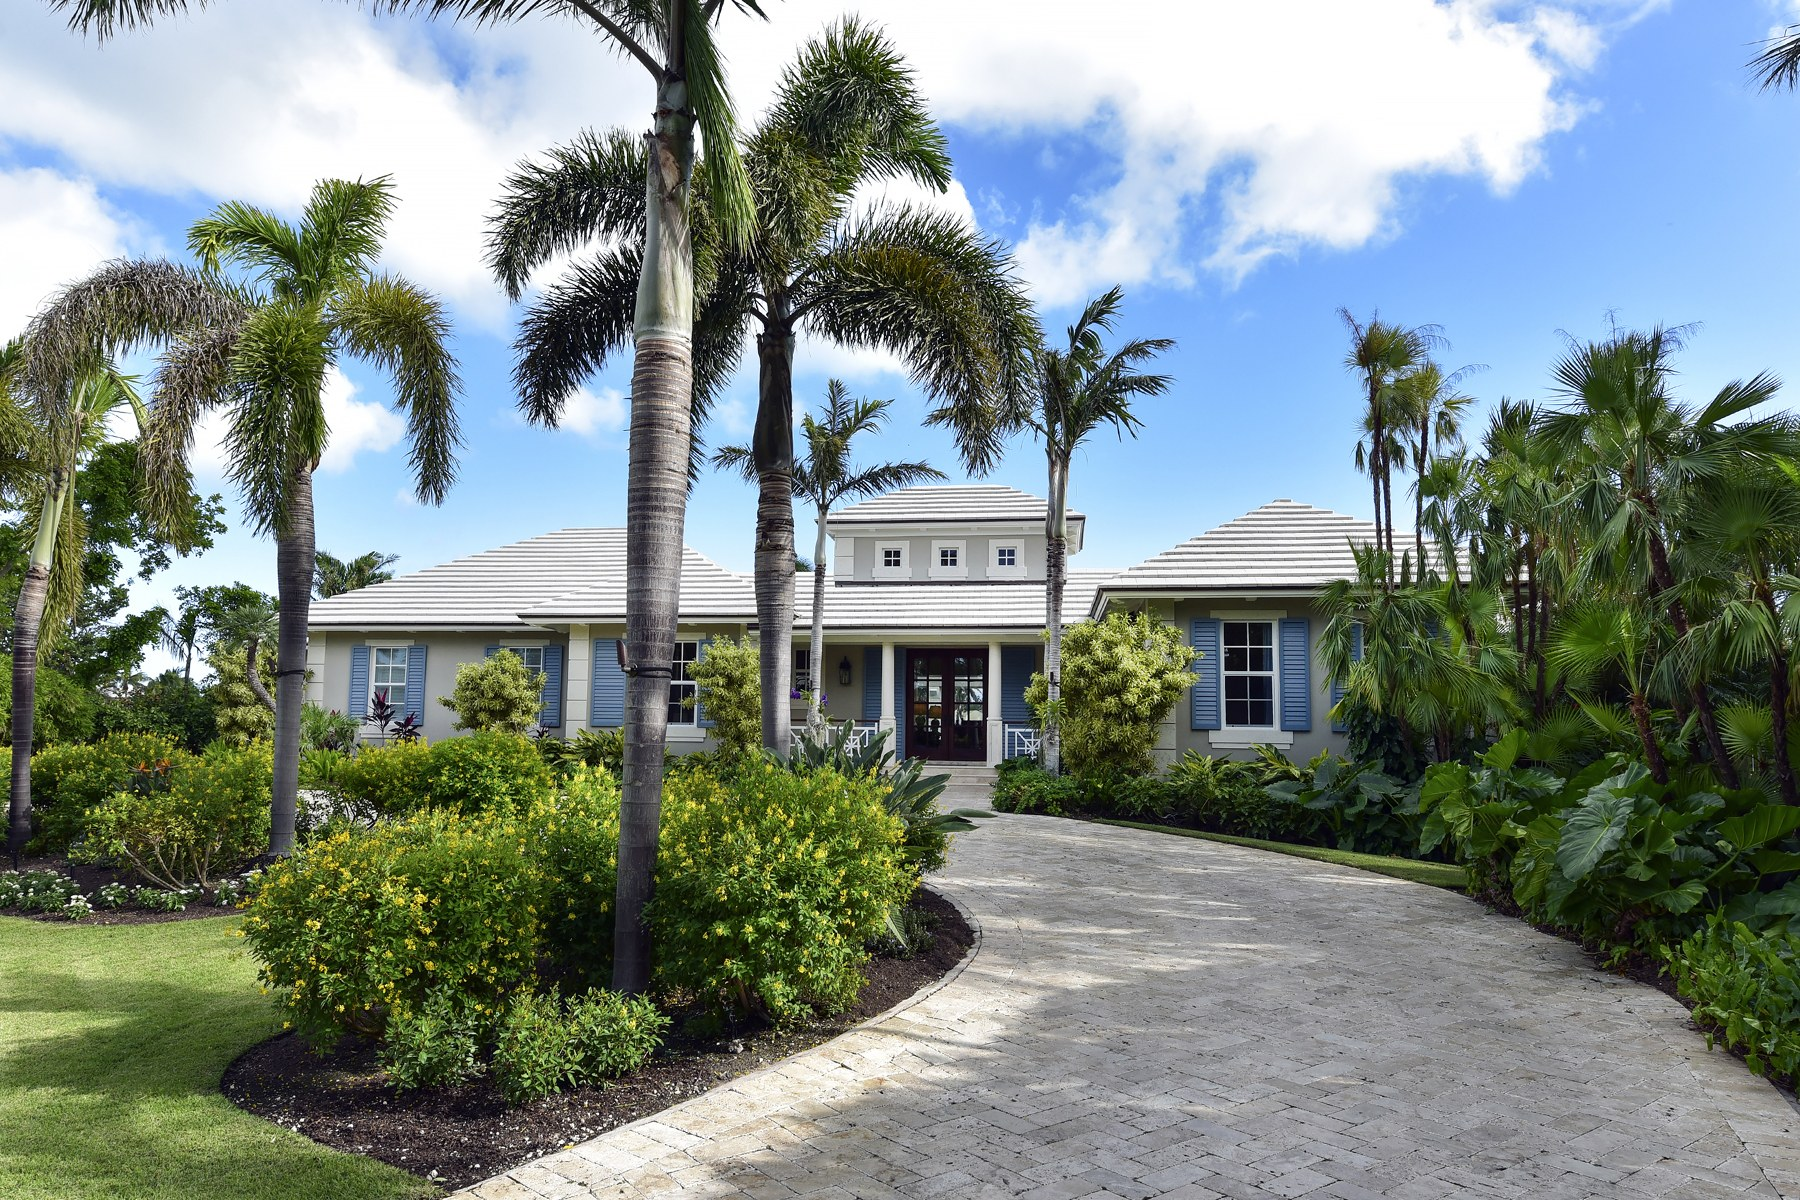 Single Family Homes のために 売買 アット 26 Sunset Cay Road, Key Largo, FL Key Largo, フロリダ 33037 アメリカ